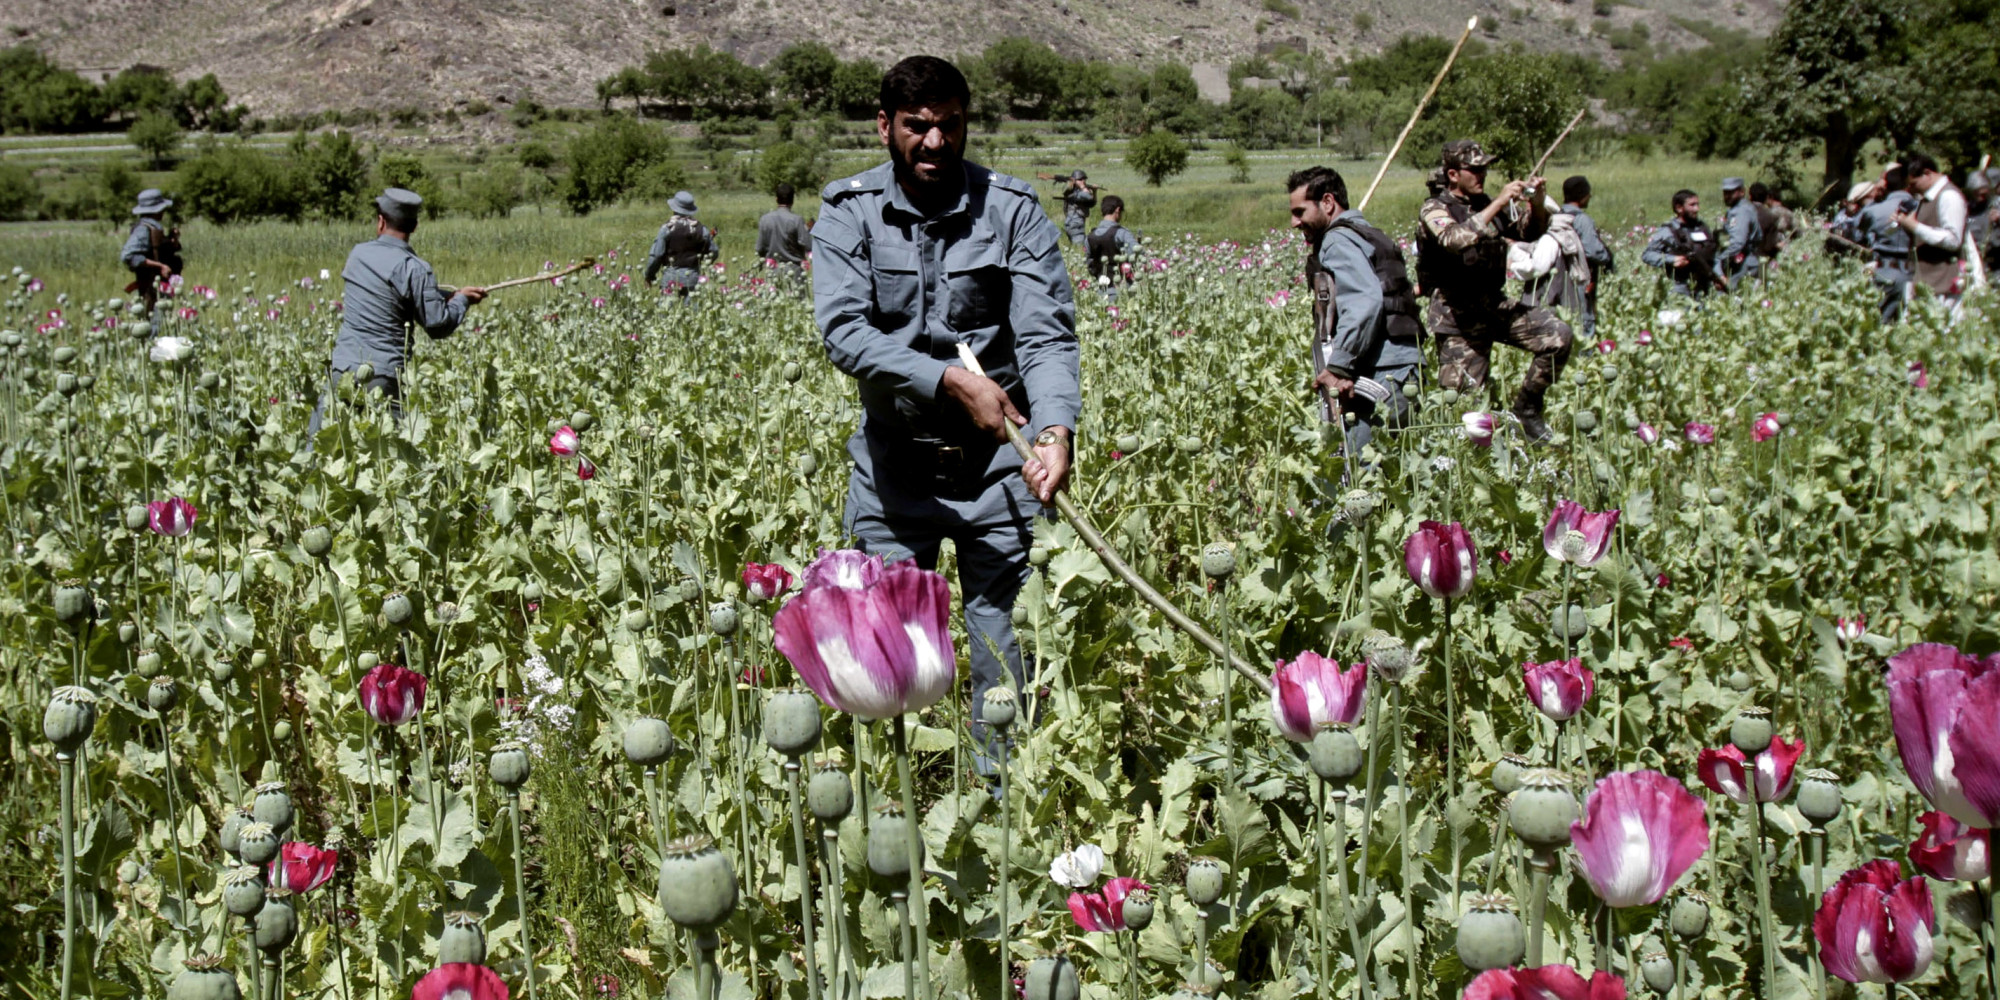 opium trade in afghanistan history essay Opium: opium, narcotic drug obtained from the unripe seedpods of the opium   in china an expanding and profitable market for the drug, and the opium trade   also in the late 1990s, opium poppy cultivation increased in afghanistan, and.